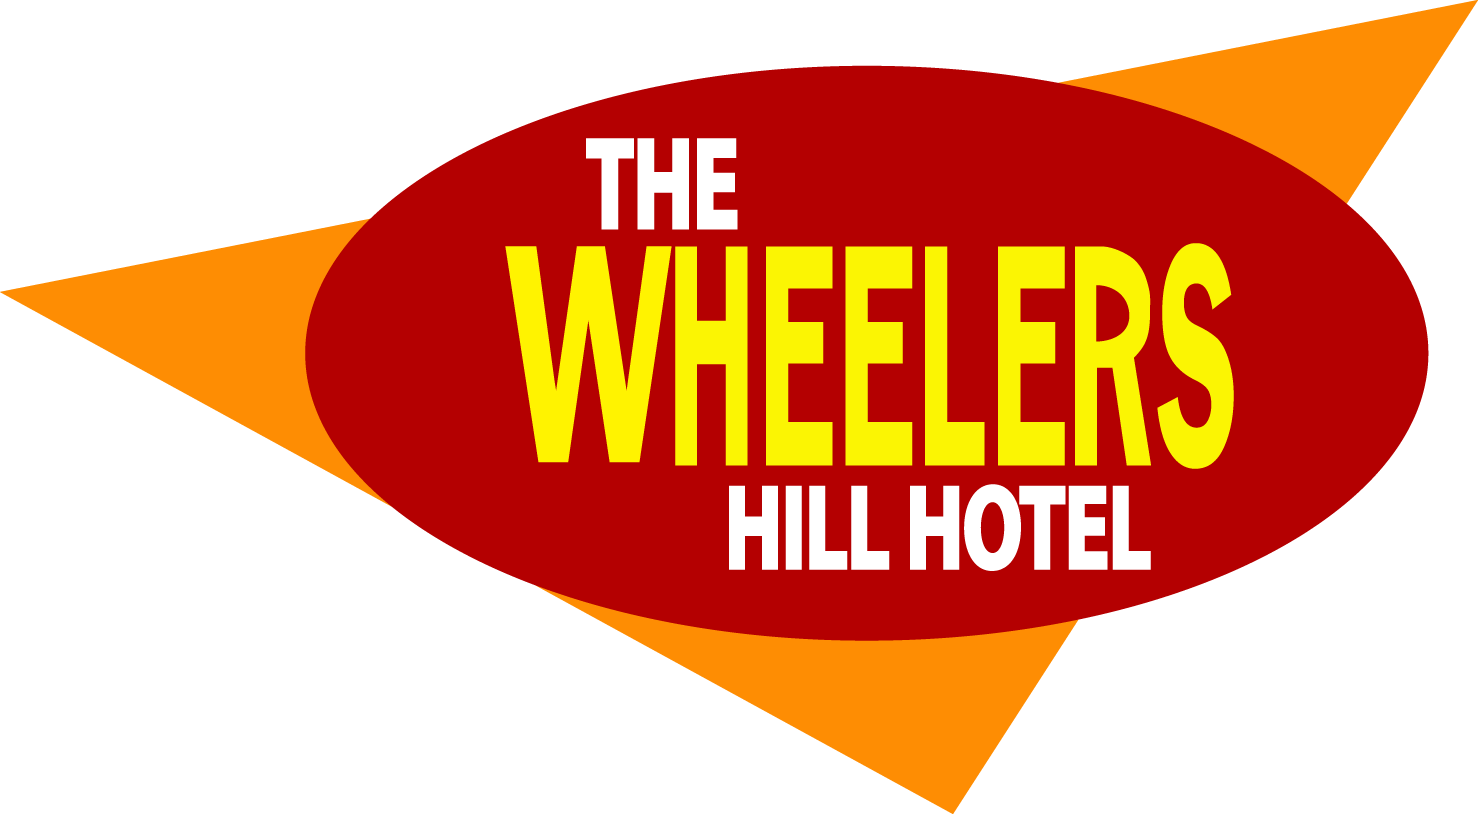 Wheelers Hill Hotel